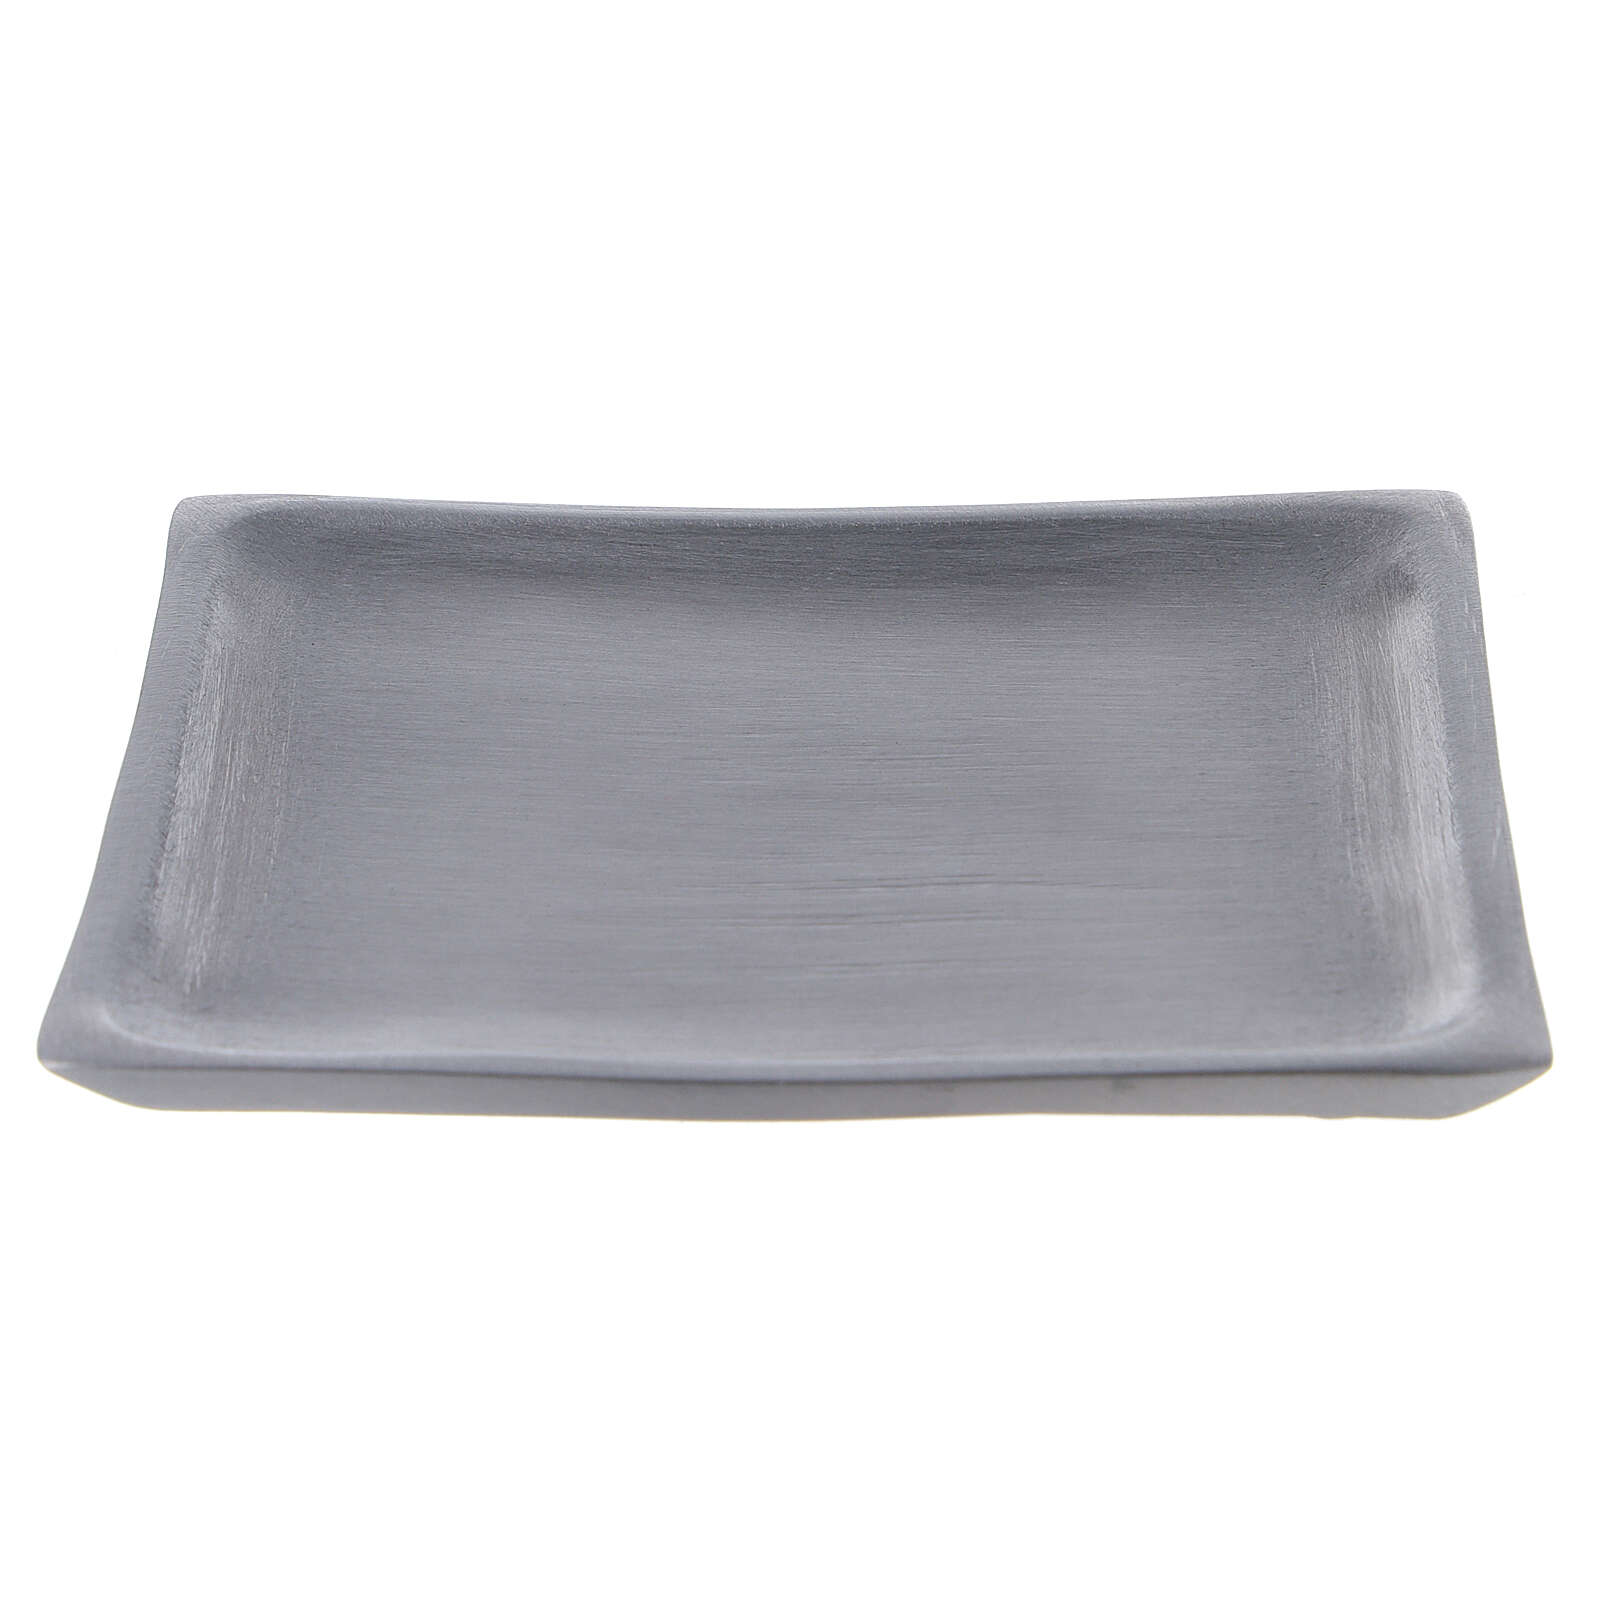 Square candle holder plate in satin finish aluminium 4 1/4x4 1/4 in 3